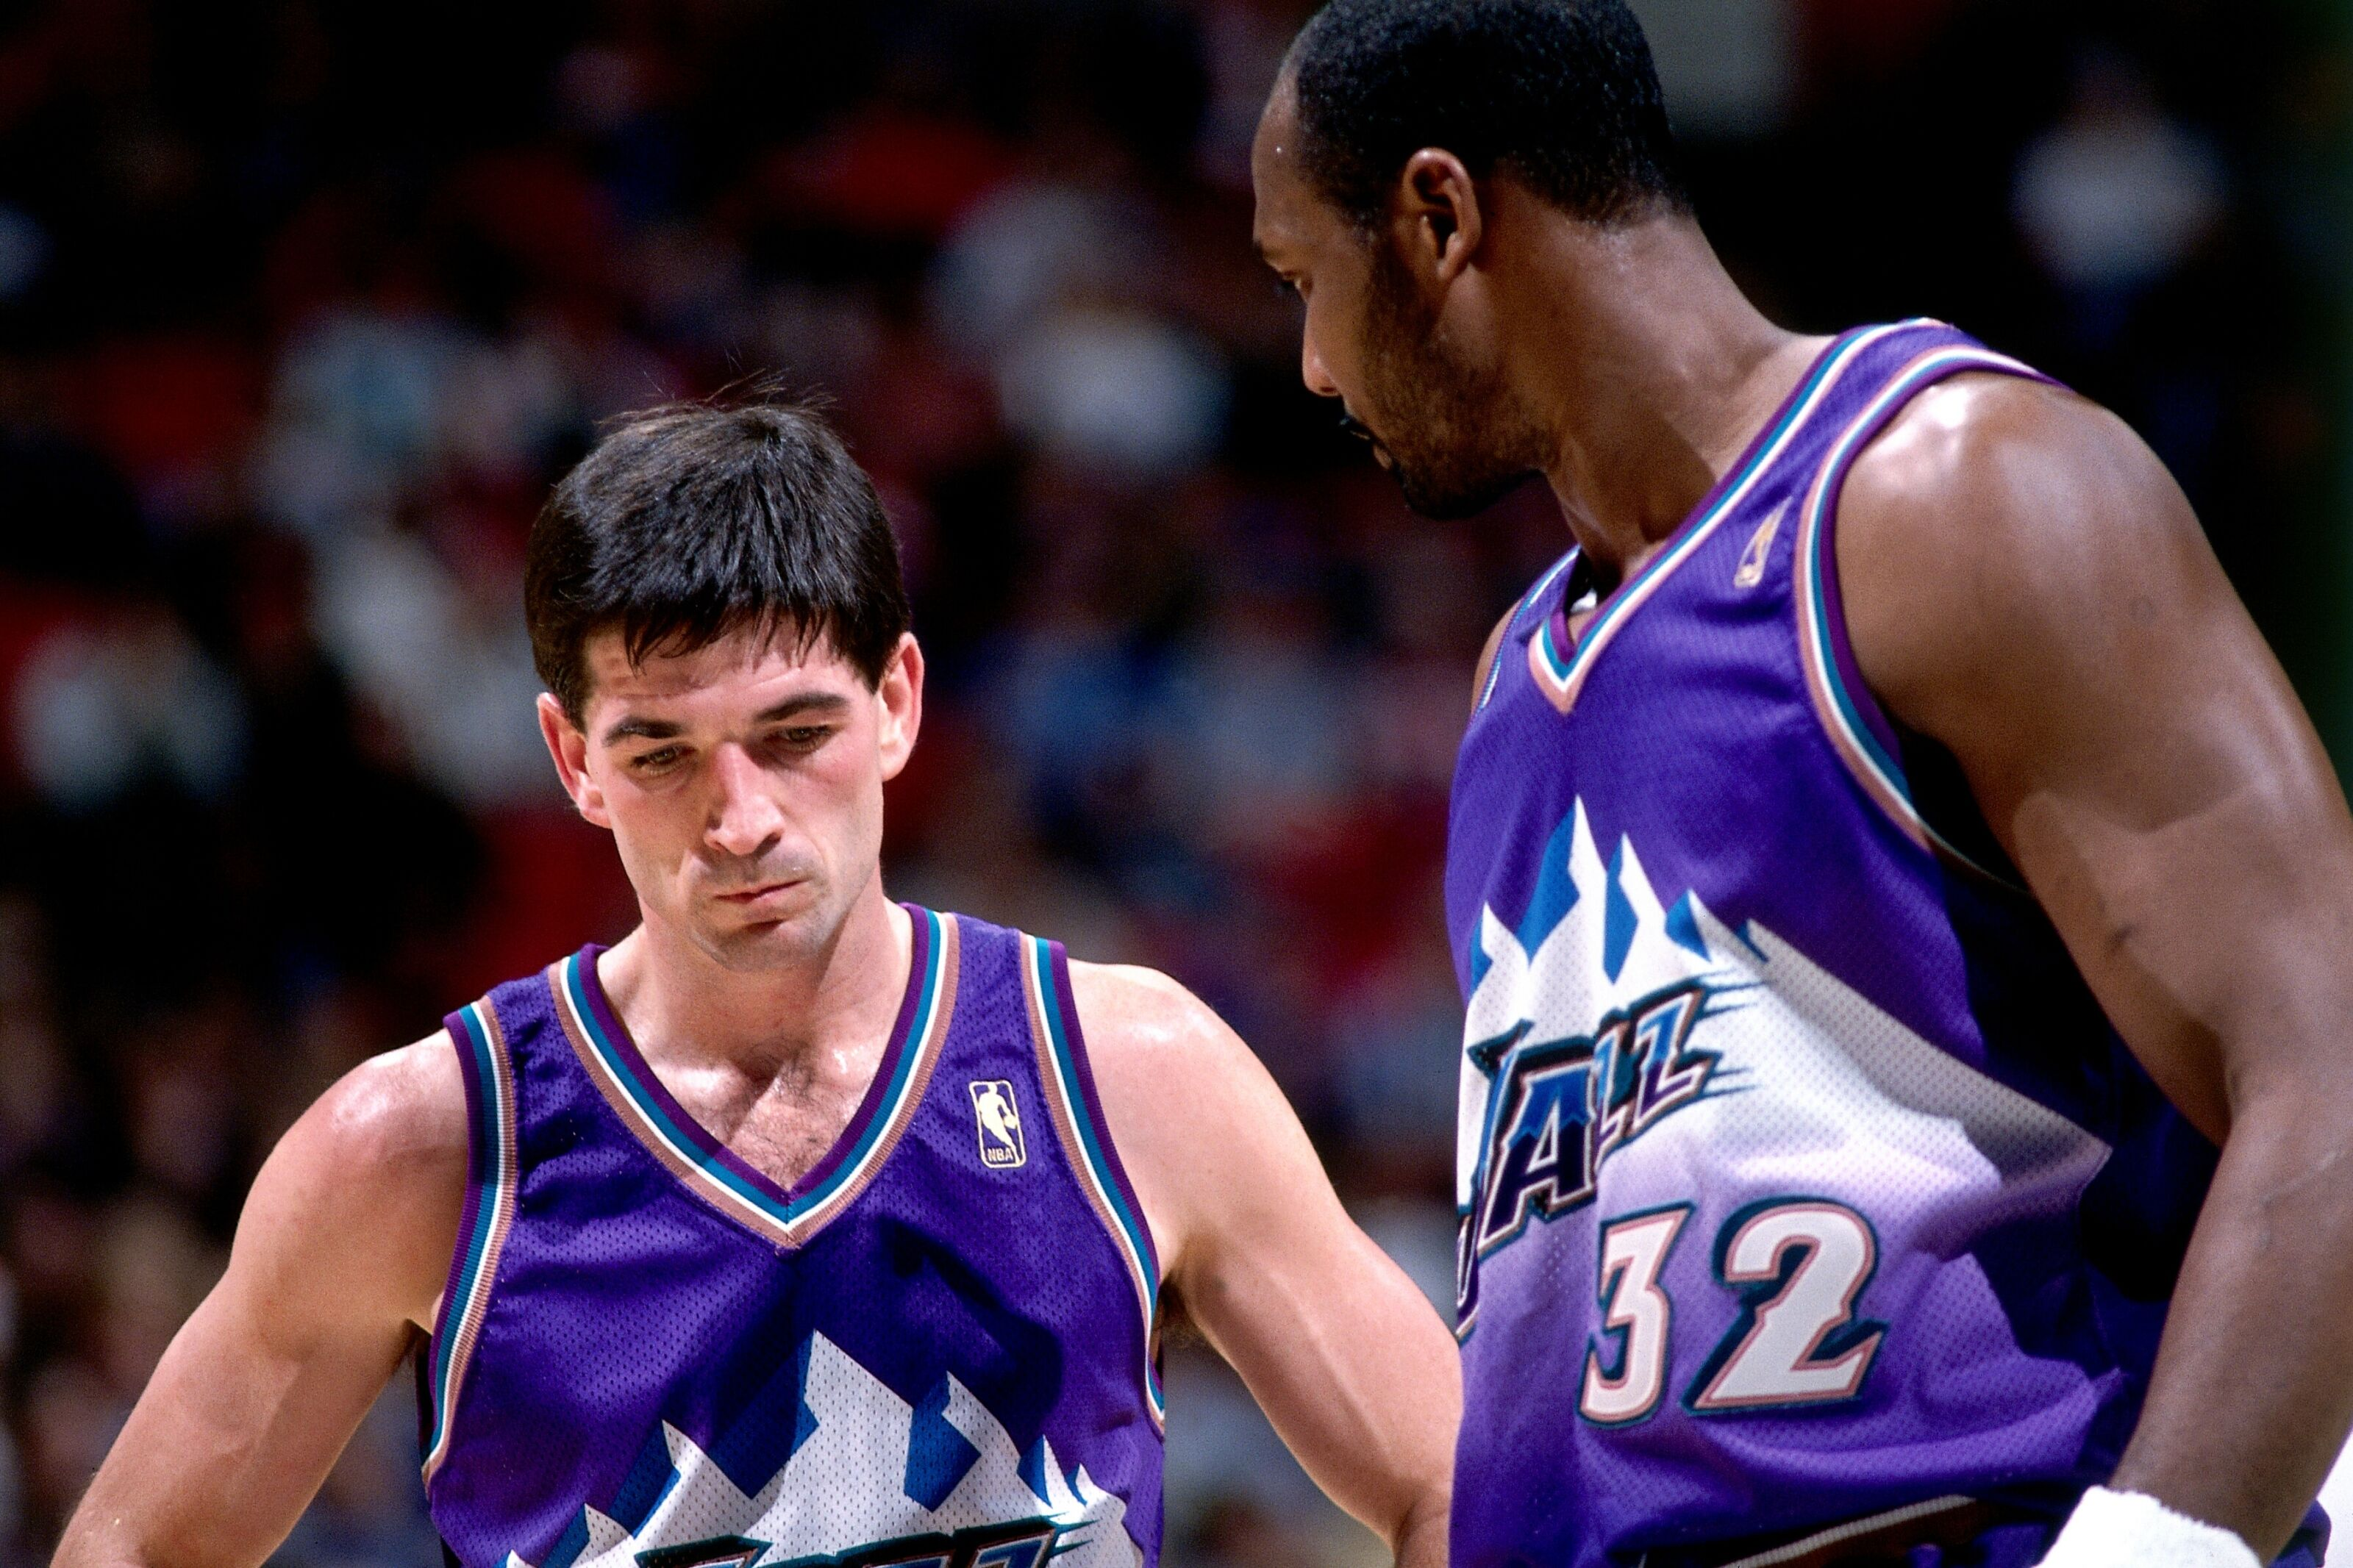 meet f31e2 a5bf0 Utah Jazz: Throwback jerseys aren't just cool, they're sign ...